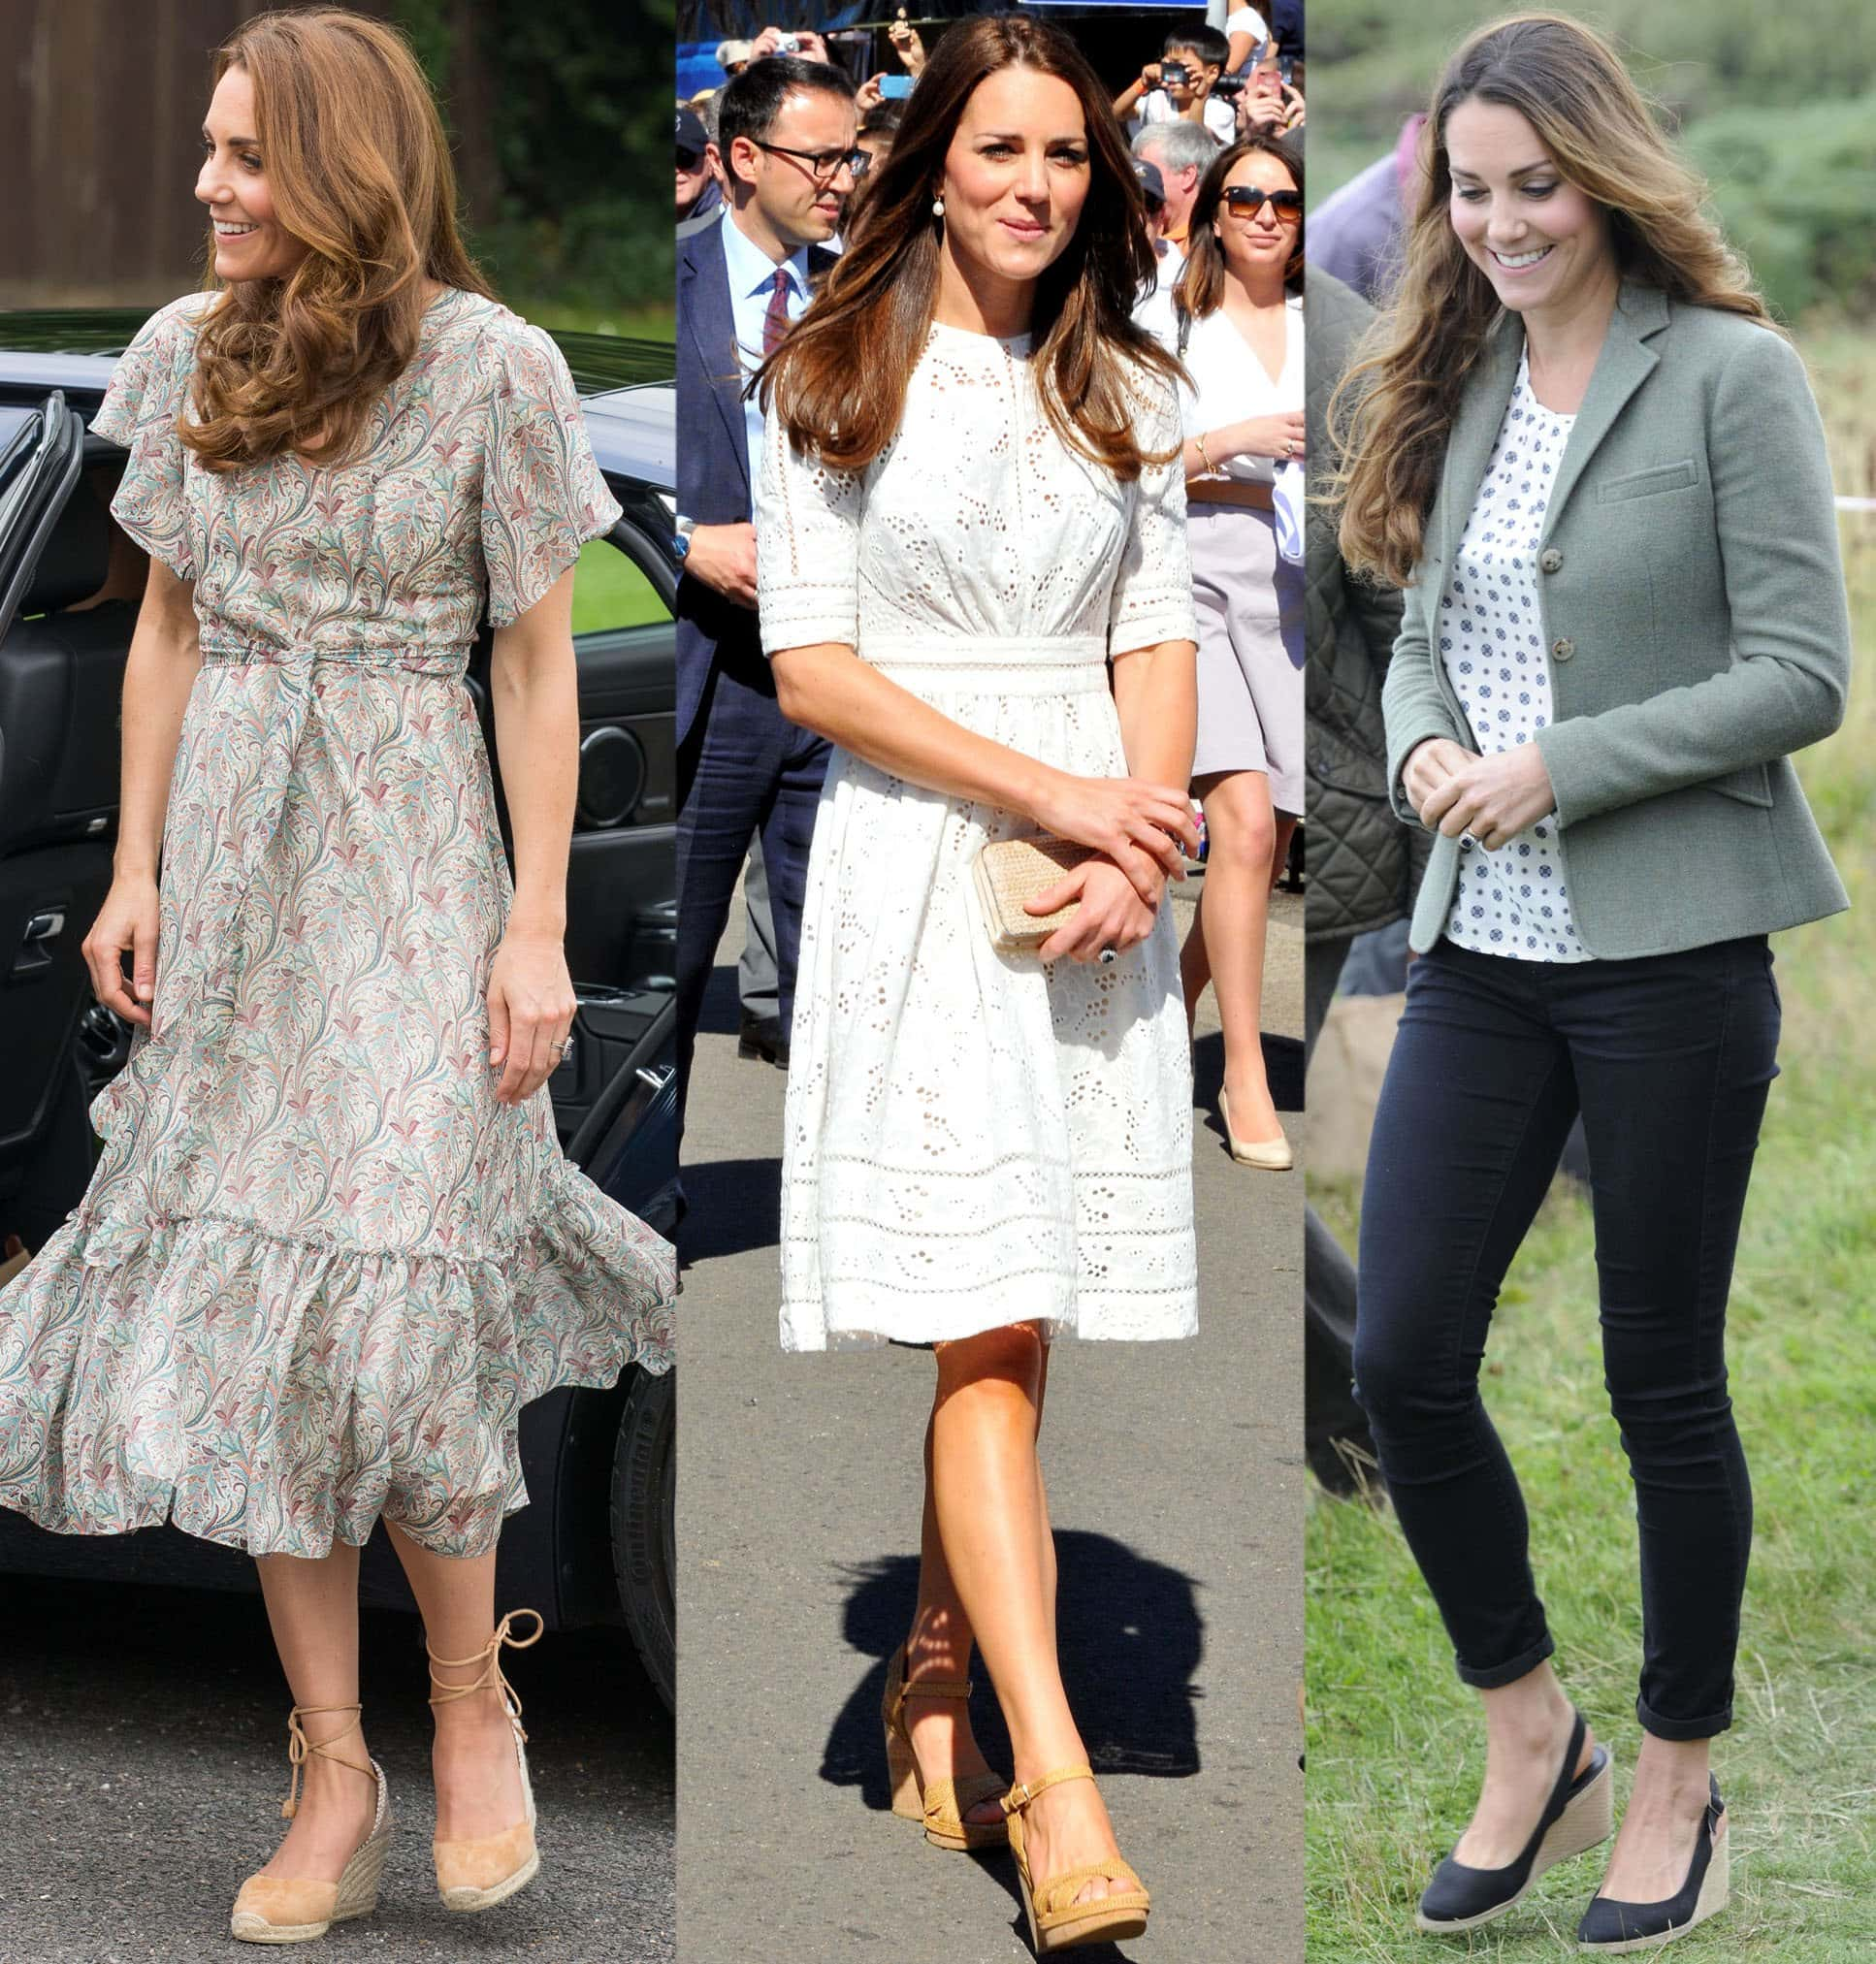 Duchess of Cambridge, Kate Middleton, has a penchant for wedge shoes